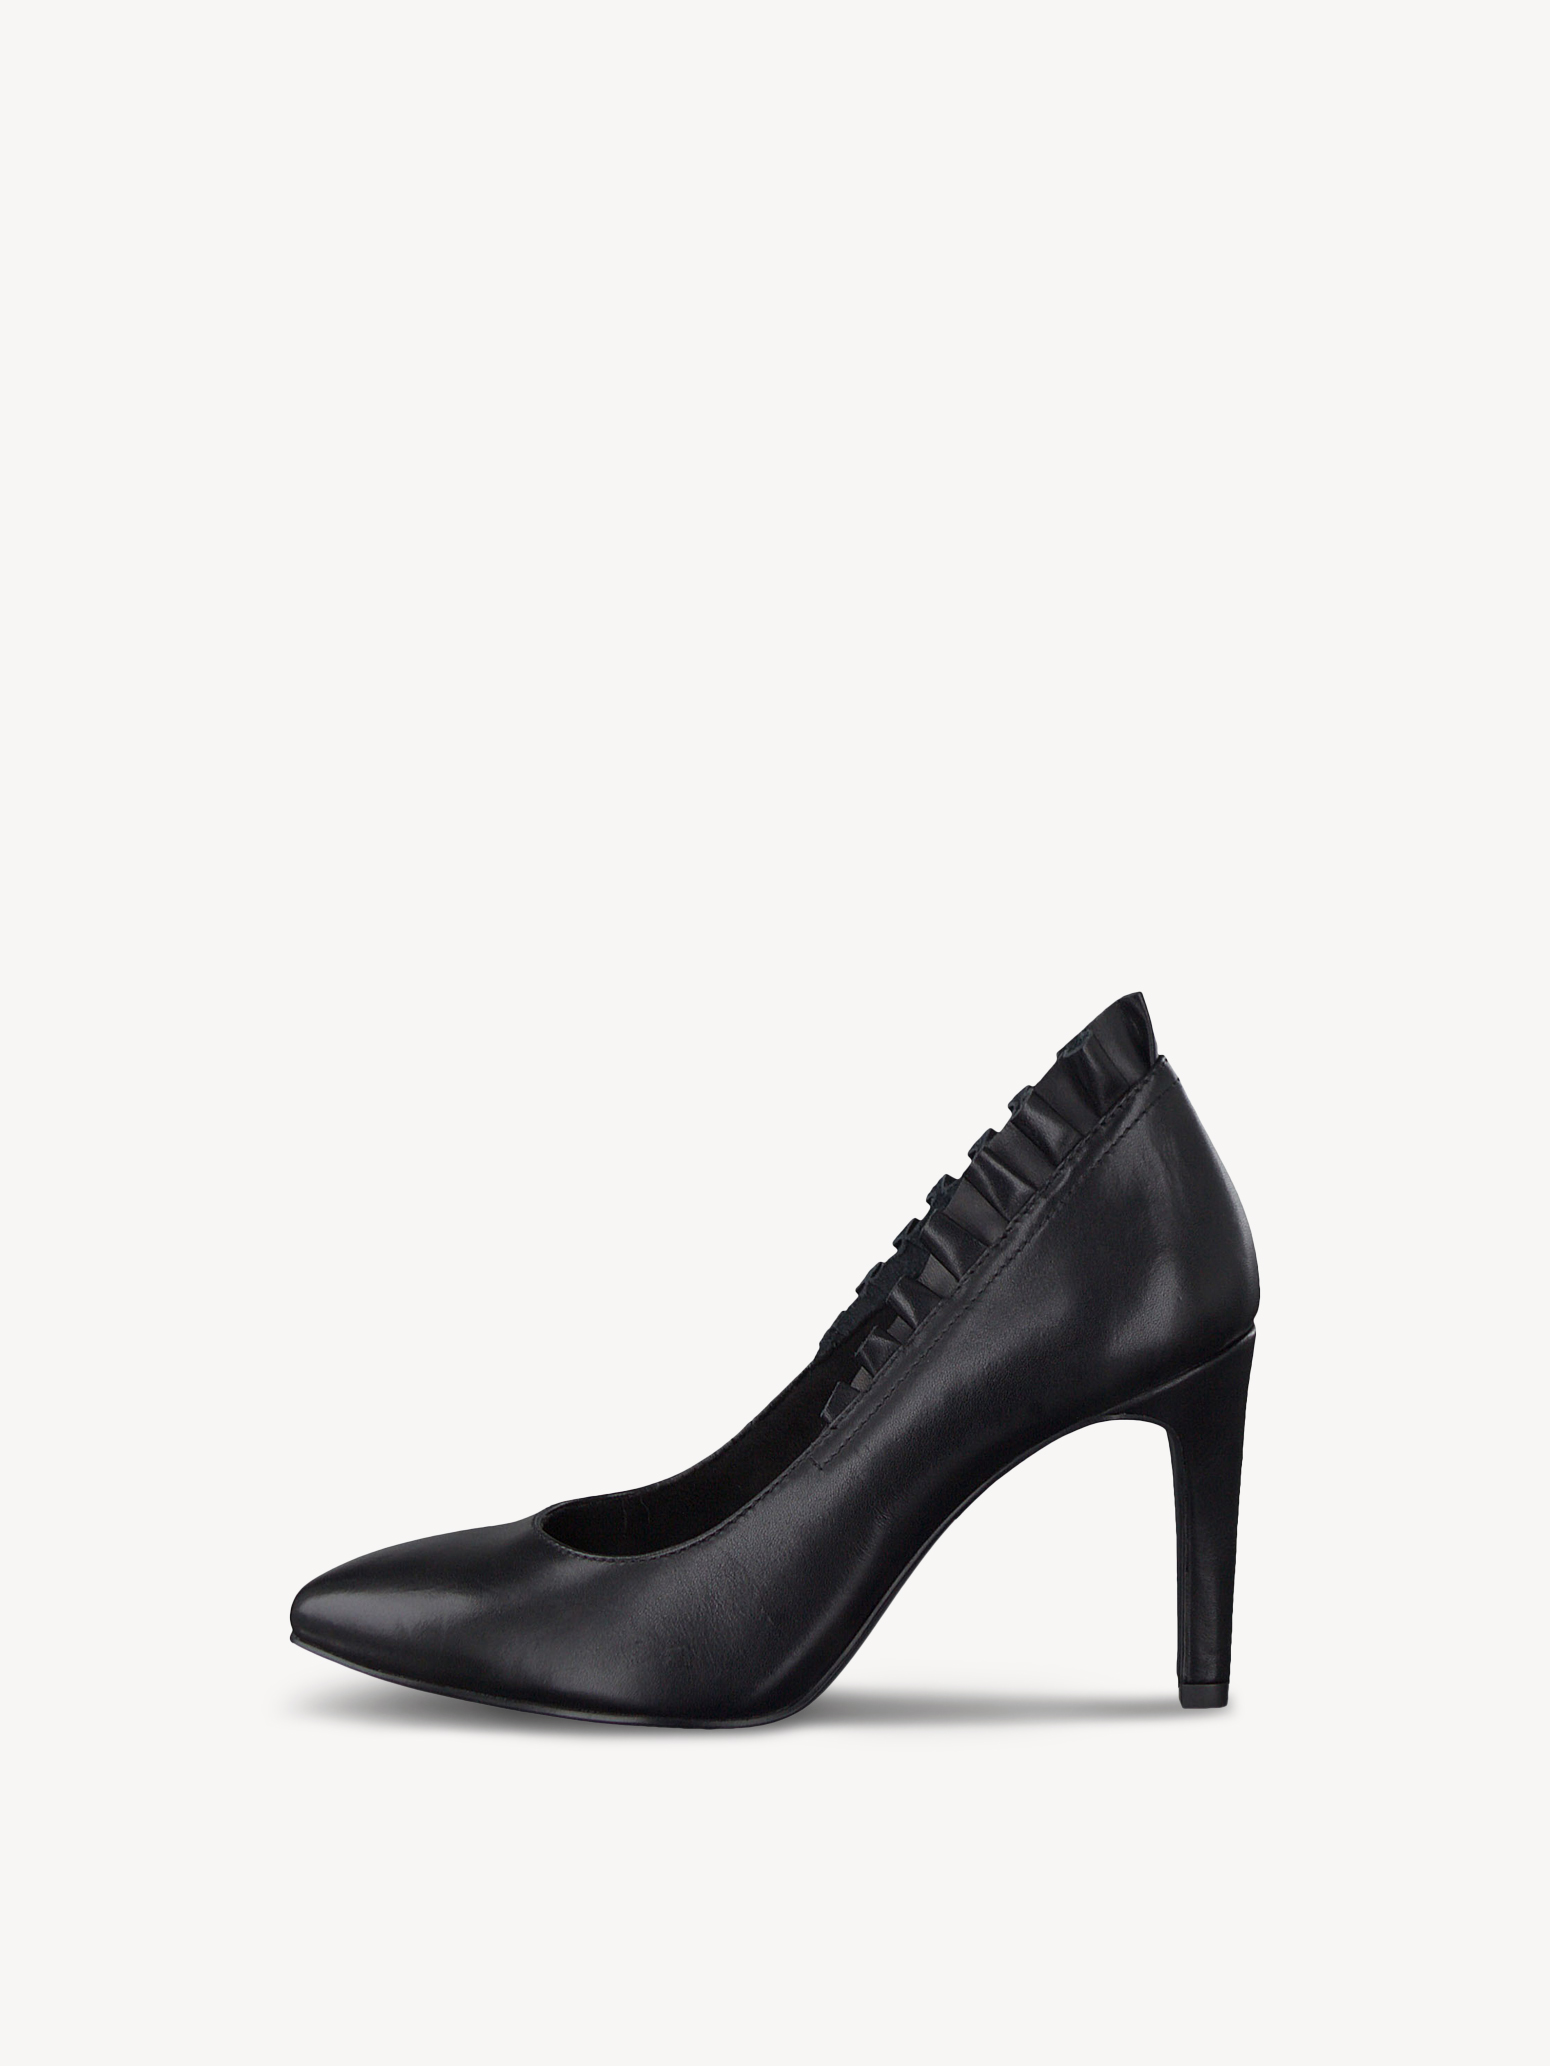 Lederpumps - schwarz, BLACK LEATHER, hi-res